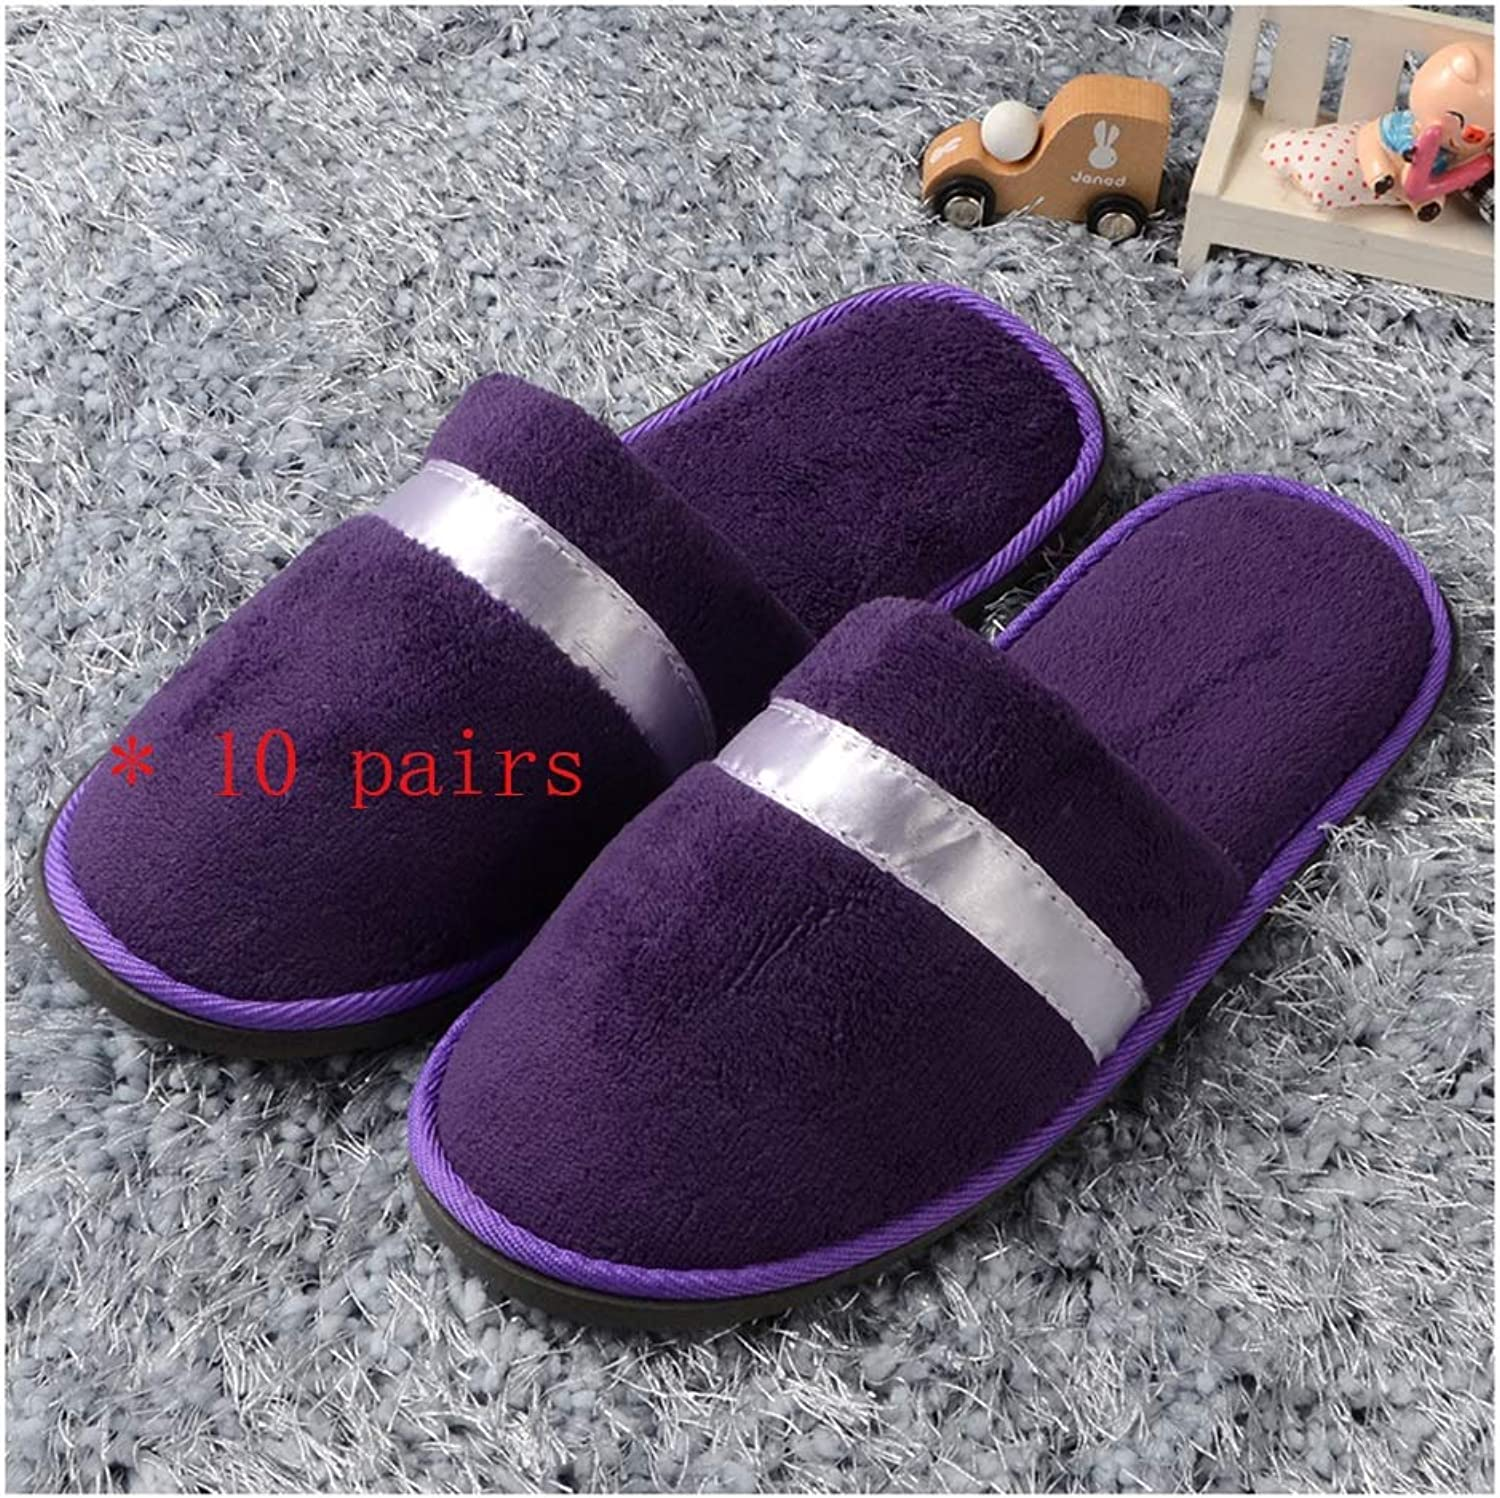 Slippers Women and Men Disposable Portable Women's Slippers Non-Disposable Women's Slippers 10 Pairs Women's Half Toe Spa Slippers Men's Hotel Home Hospitality Beach Sole 9mm Thick Spa-